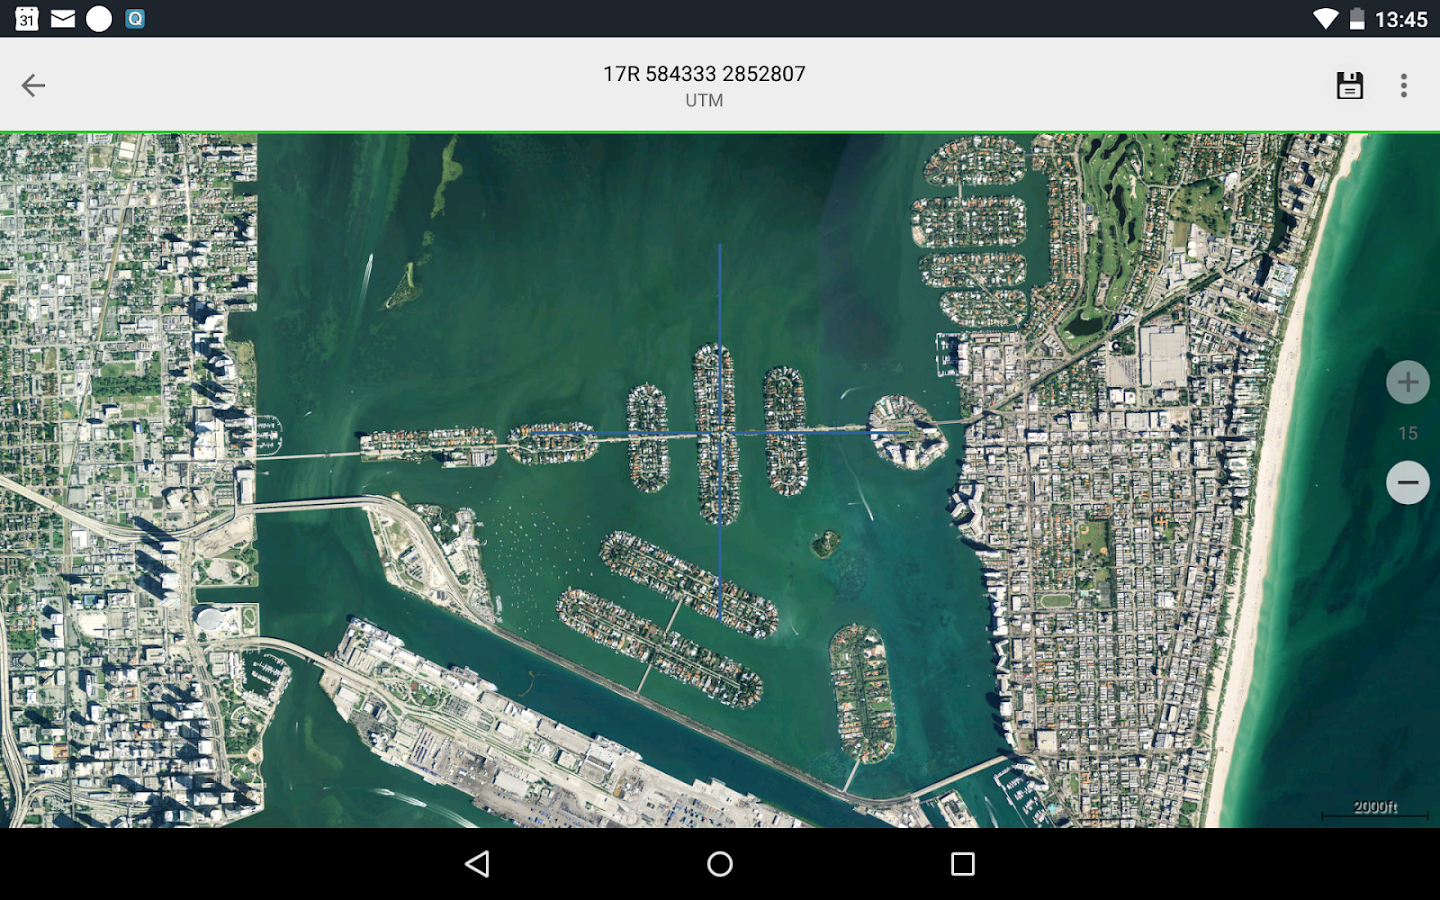 US Topo Maps Free Android Apps on Google Play